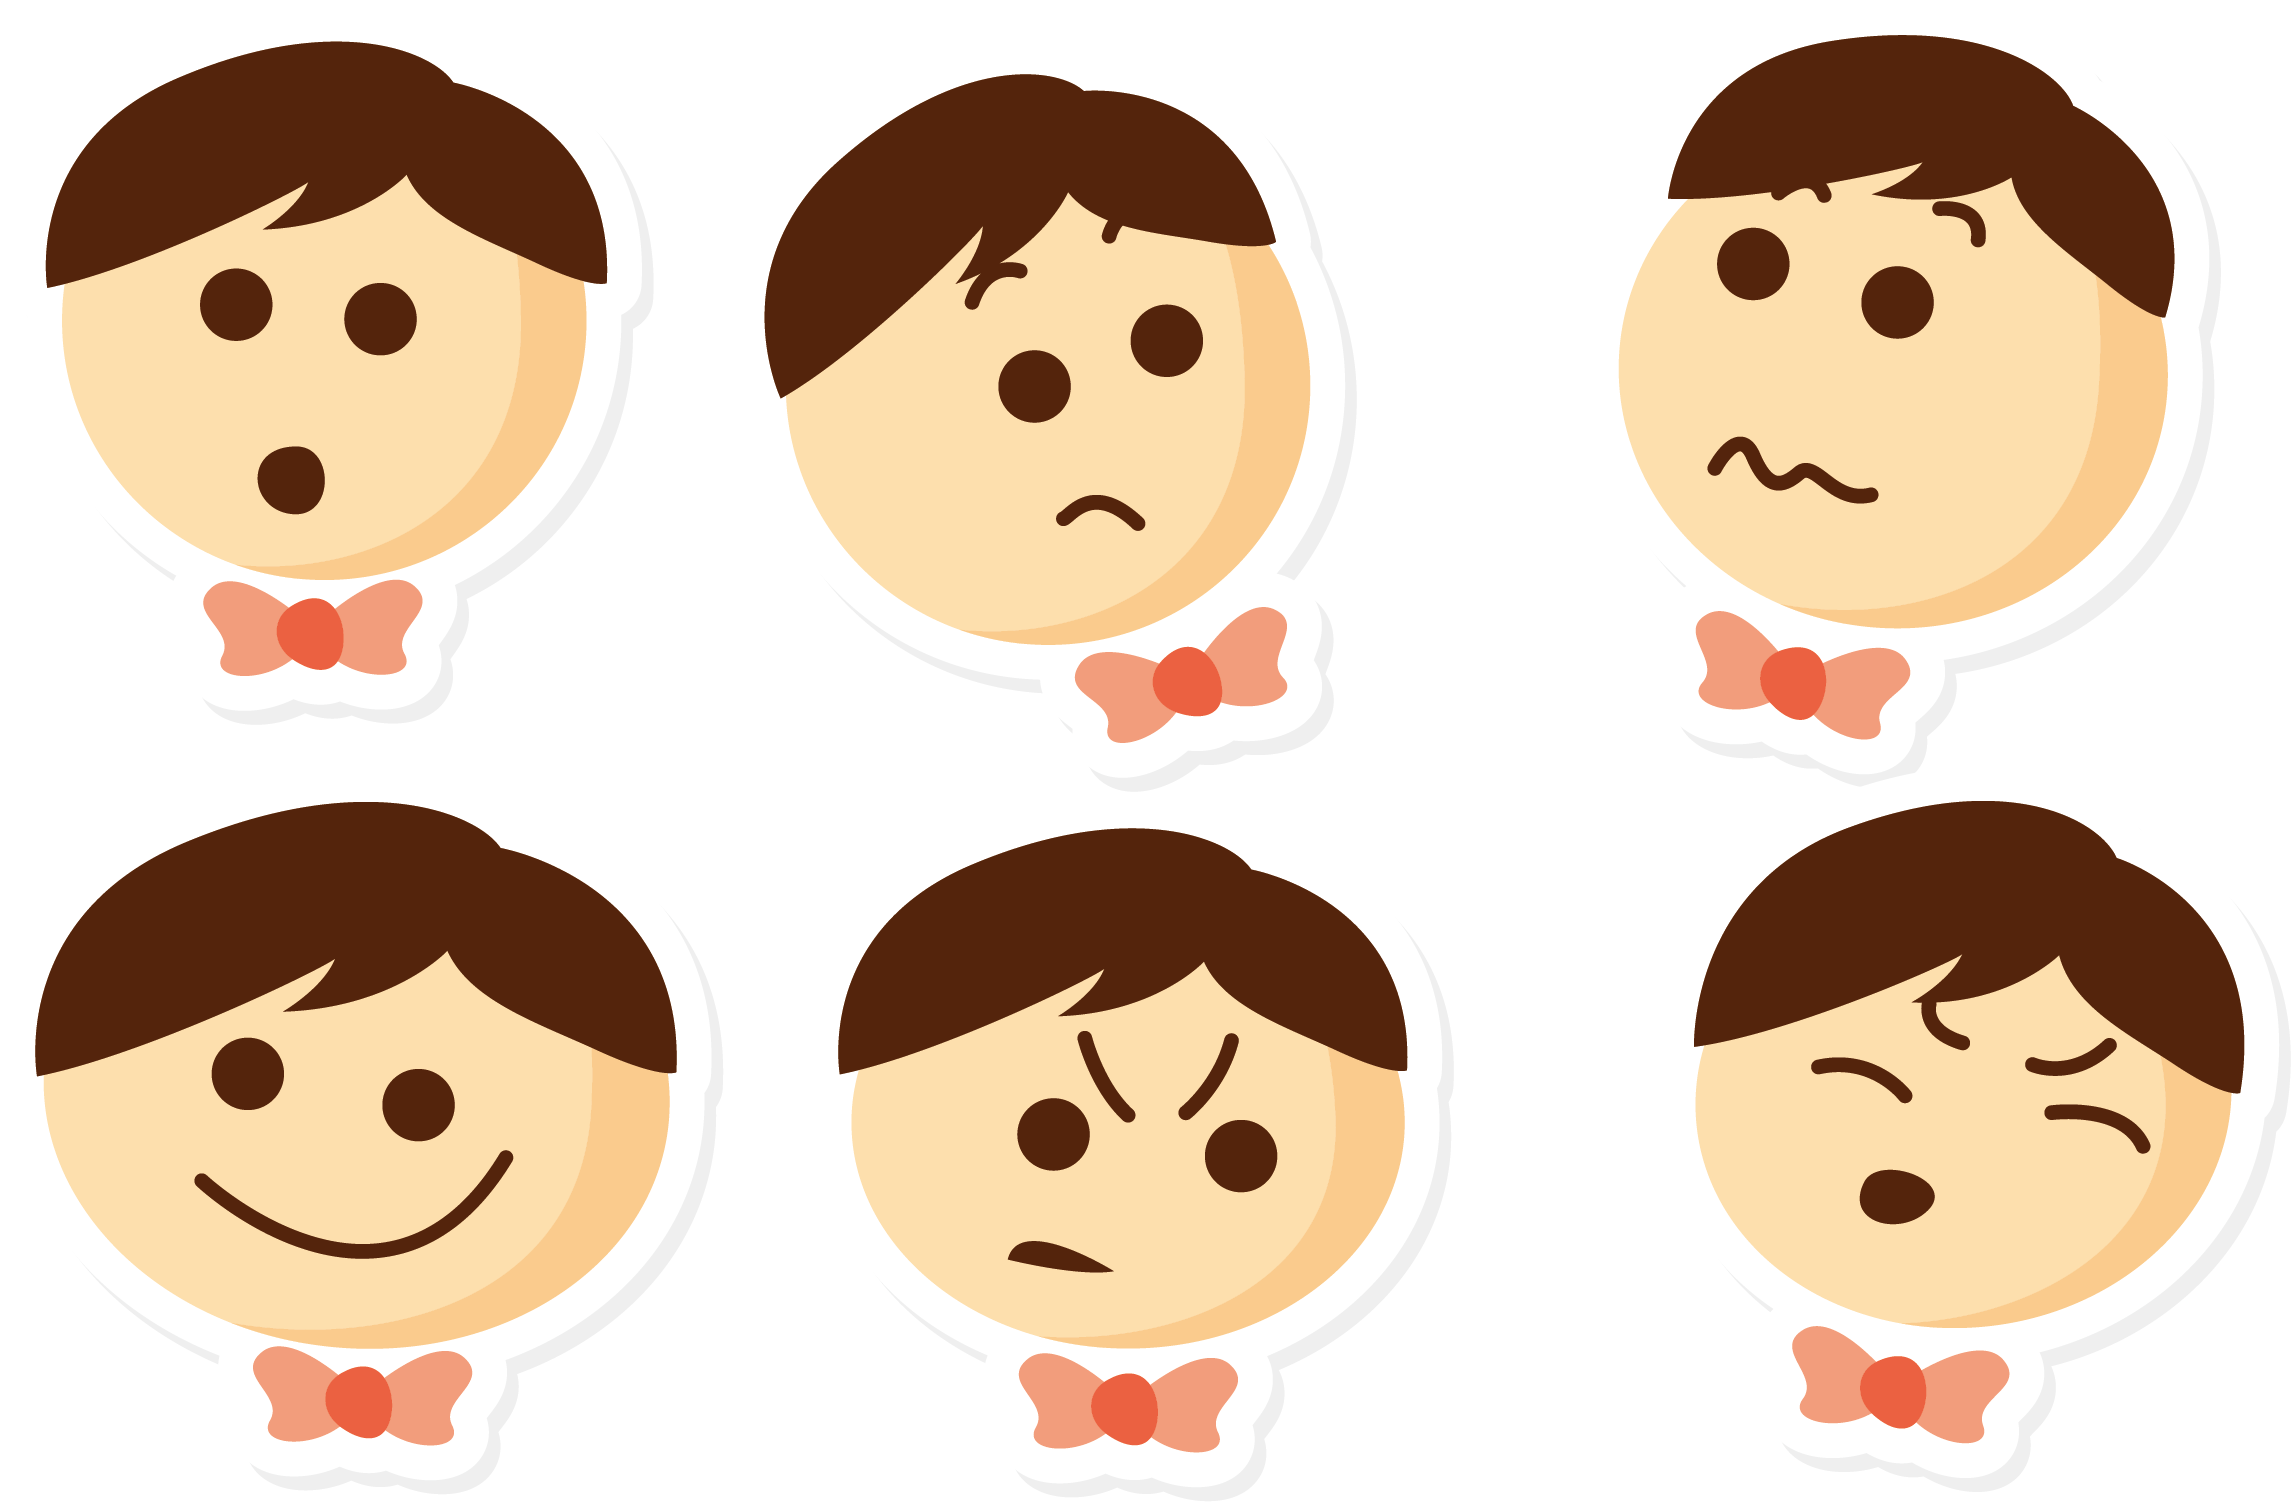 Facial expression child crying. Depression clipart sad girl